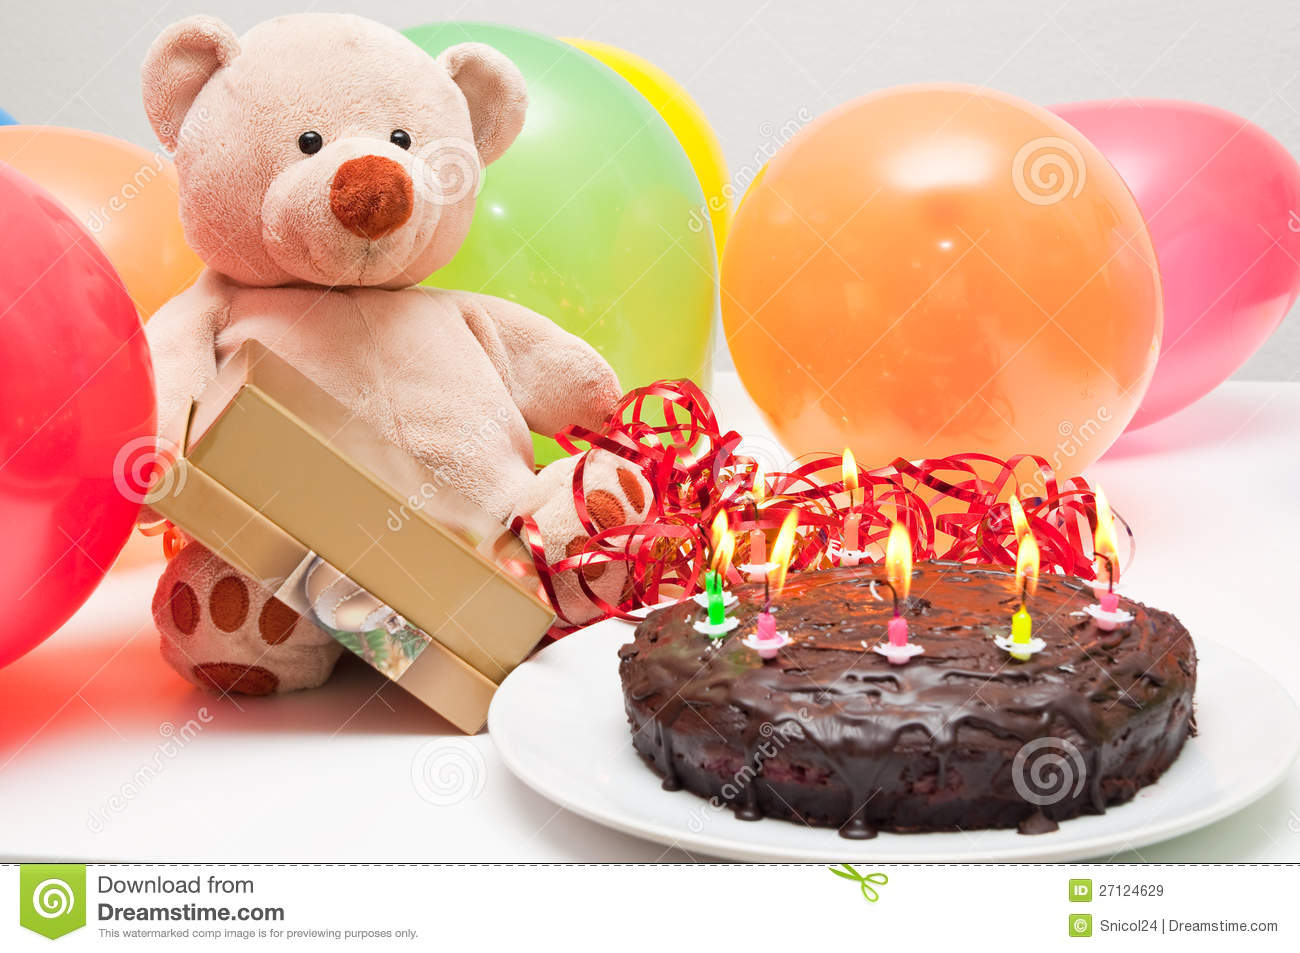 Birthday Cake And Teddy Bear Stock Image - Image: 27124629